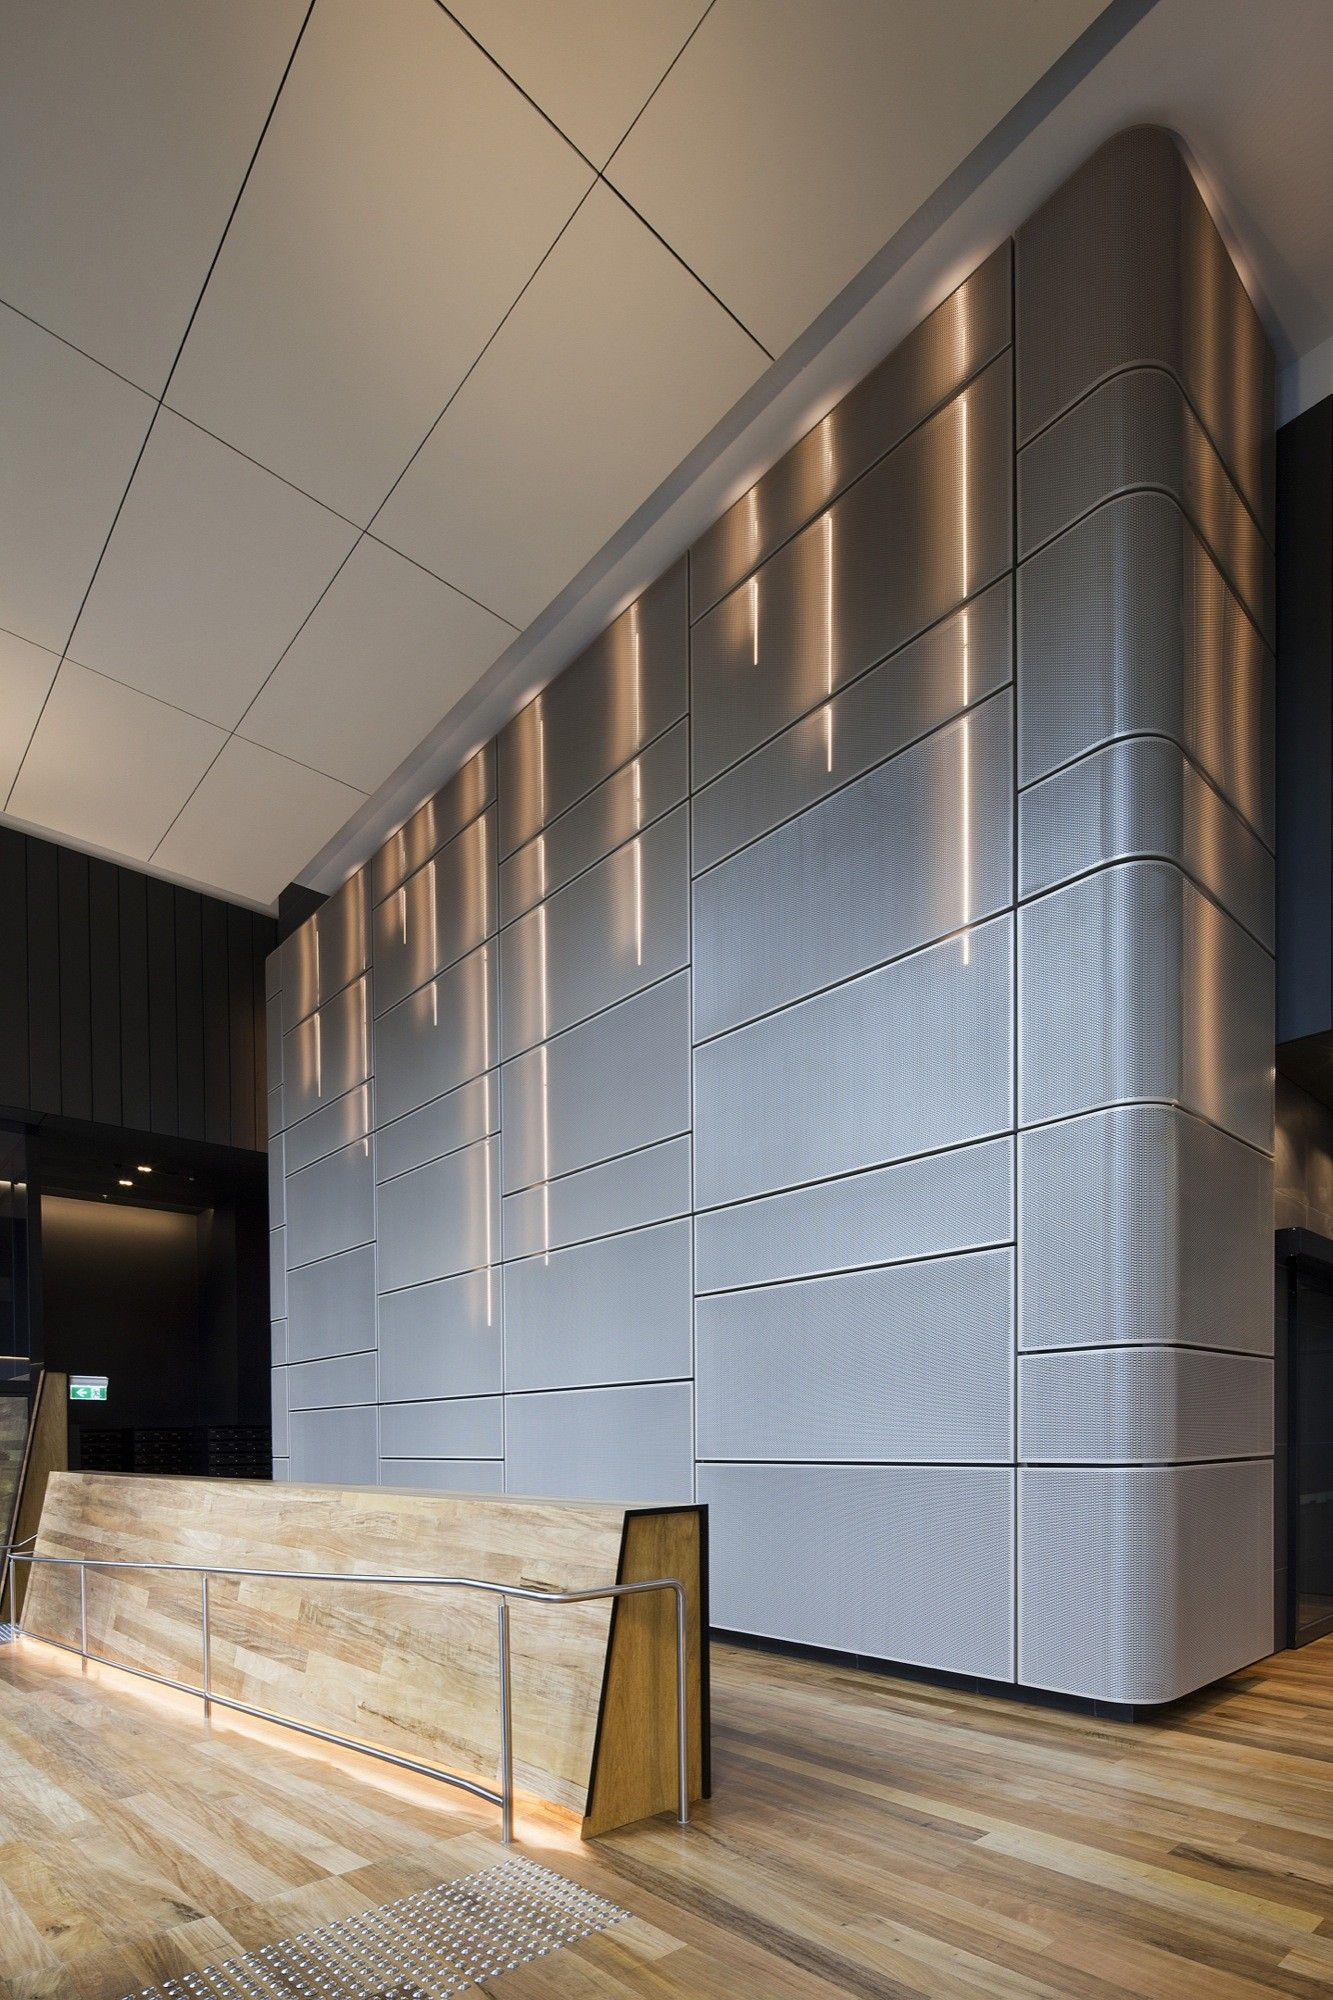 Gallery of MY80 / Hayball - 3 in 2020 | Lobby design ...